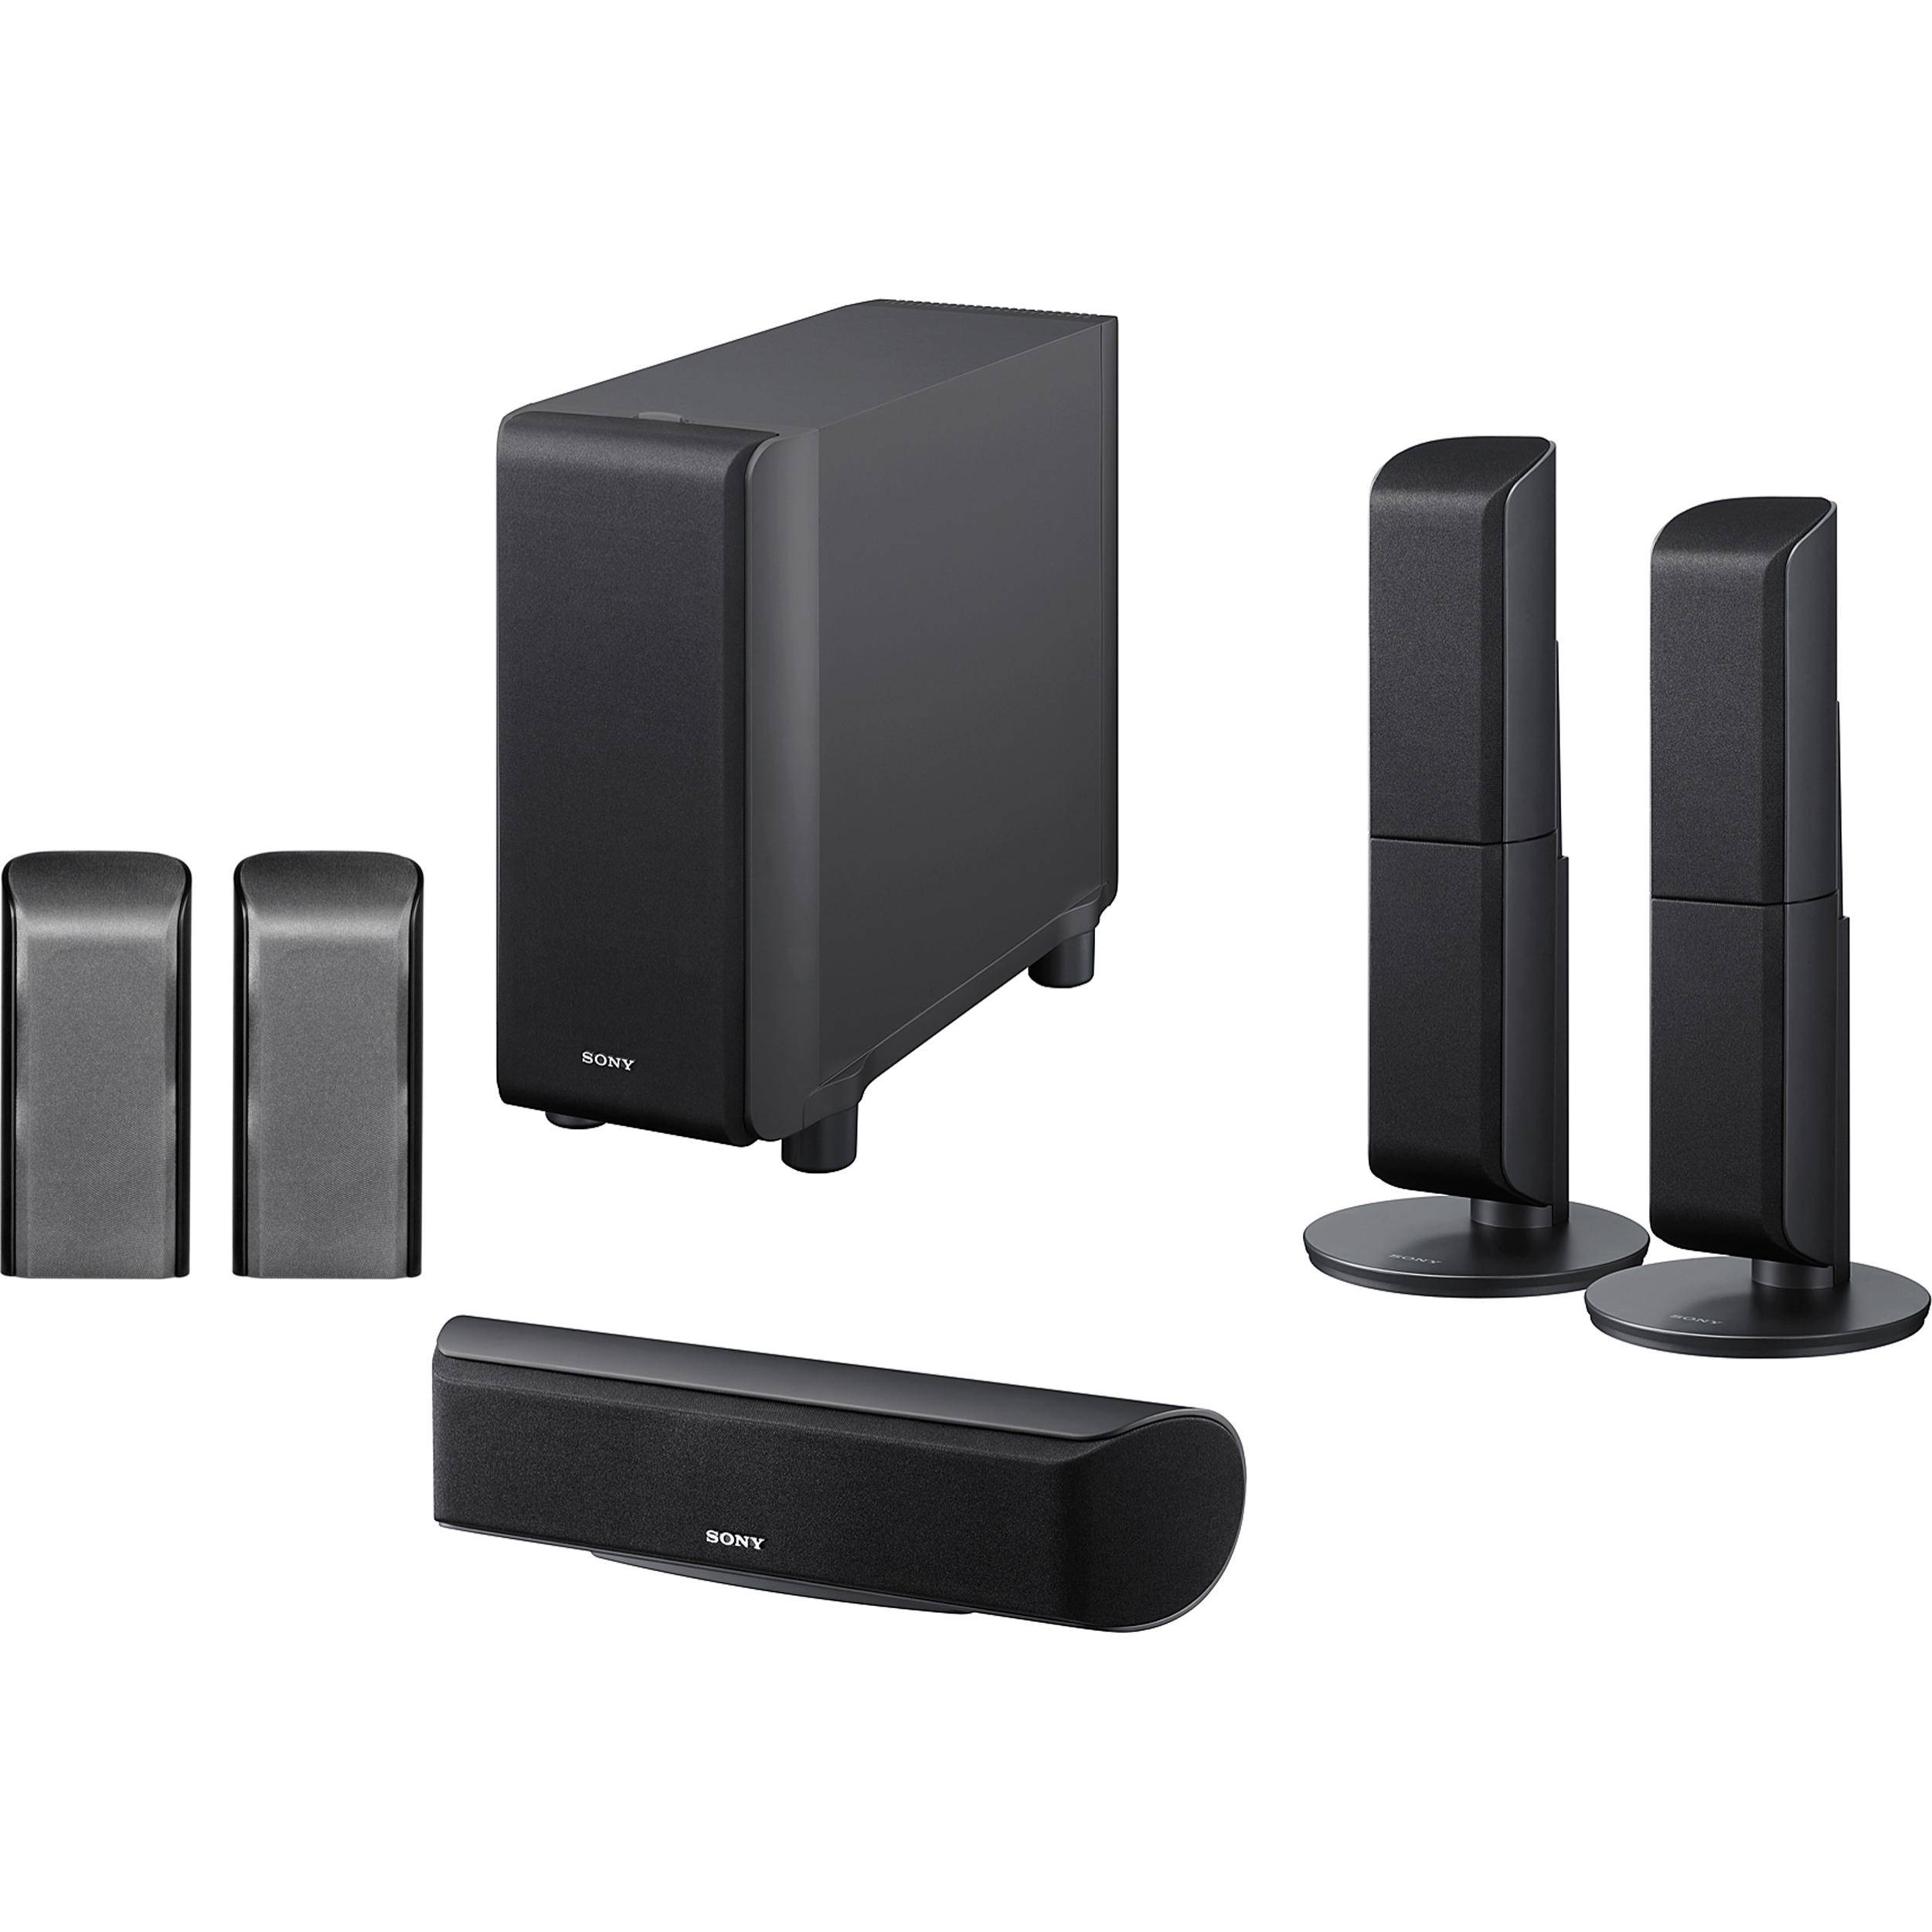 sony sa vs150h 7 1 channel speaker system savs150h b h photo. Black Bedroom Furniture Sets. Home Design Ideas